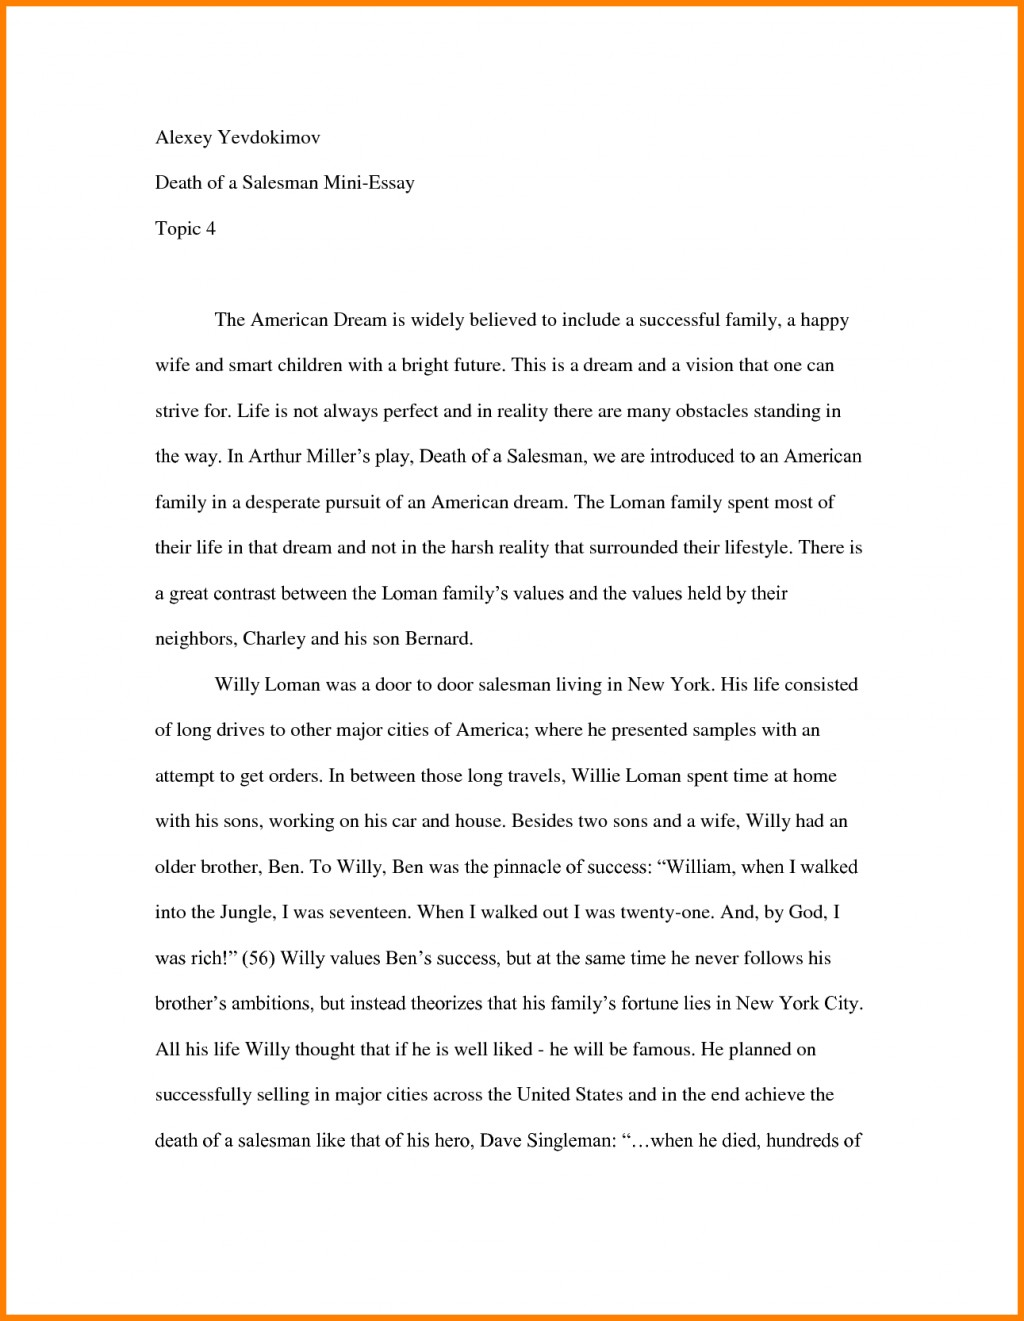 004 How To Start Off An Essay About Yourself College Awesome A Conclusion Application Large